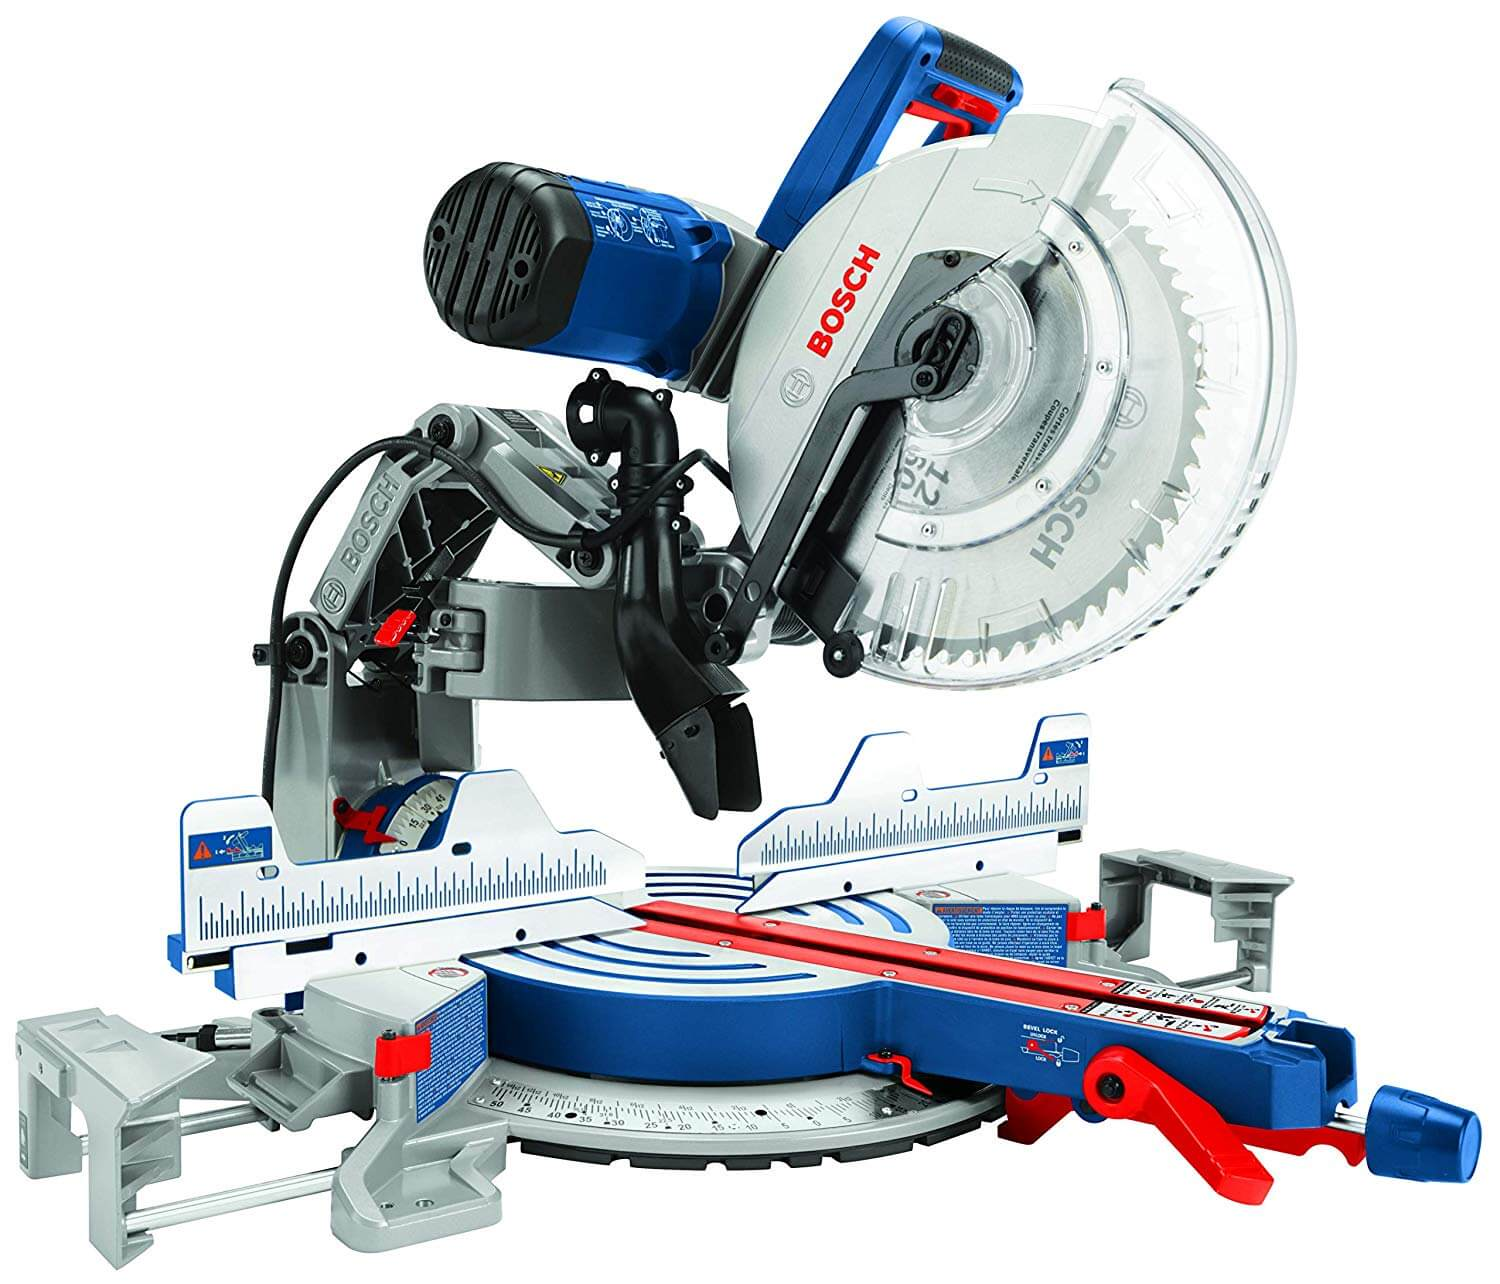 Bosch Compound miter saw (1)